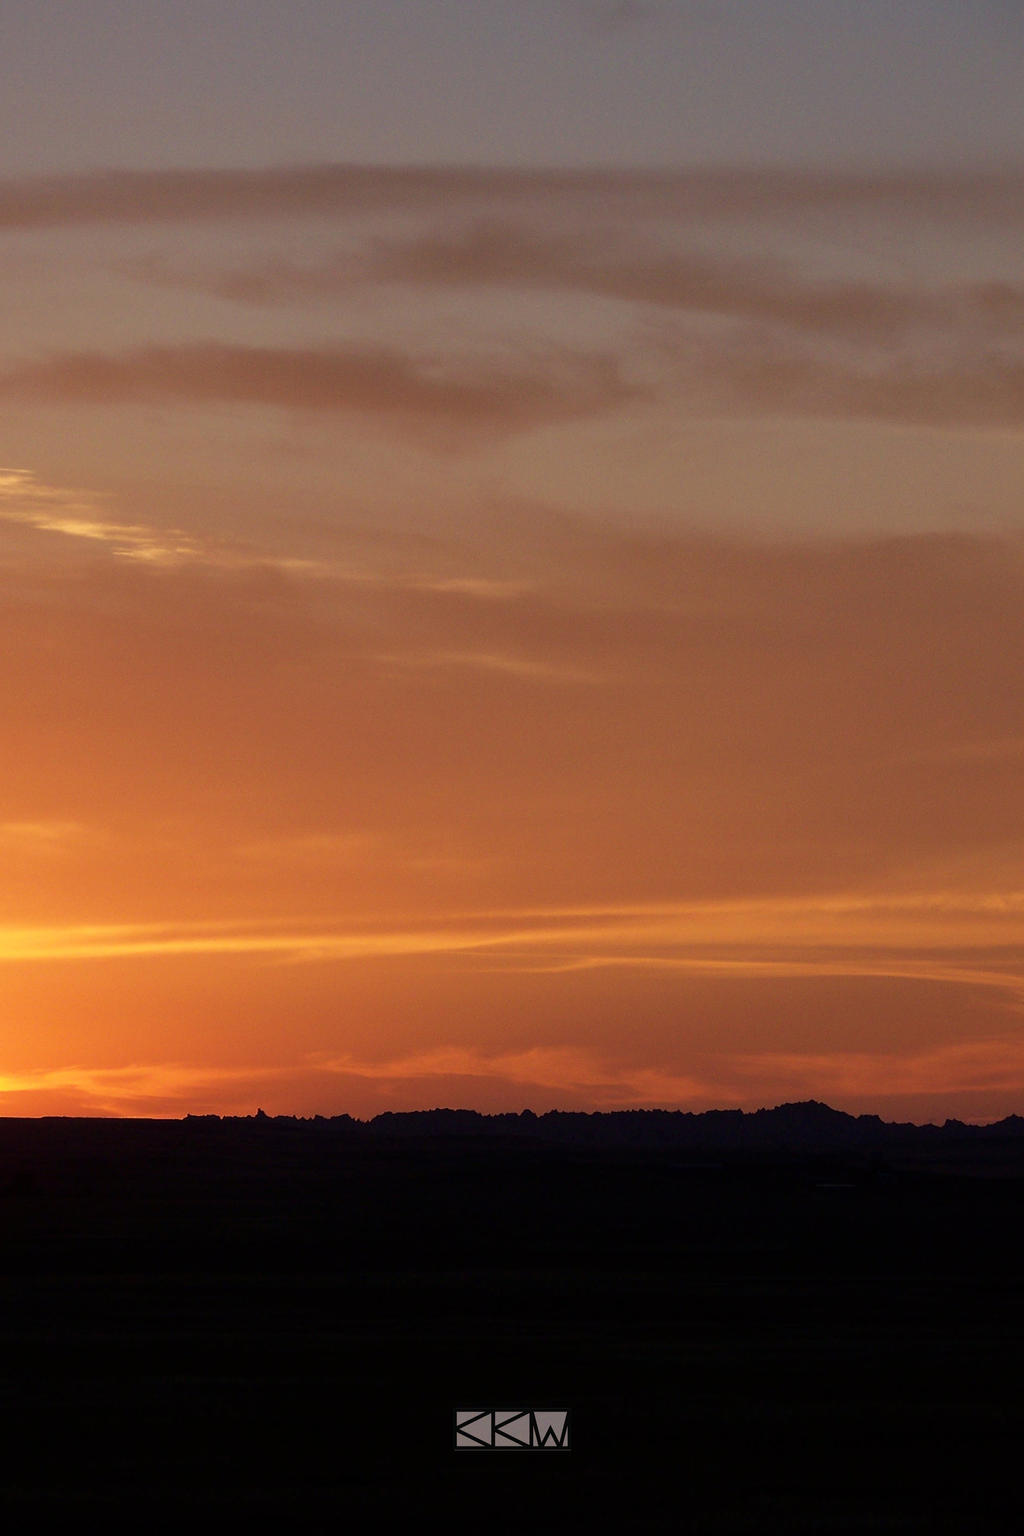 Sunset from BadlandsNationalPark SD 8/24/2013 7:35 by Crigger